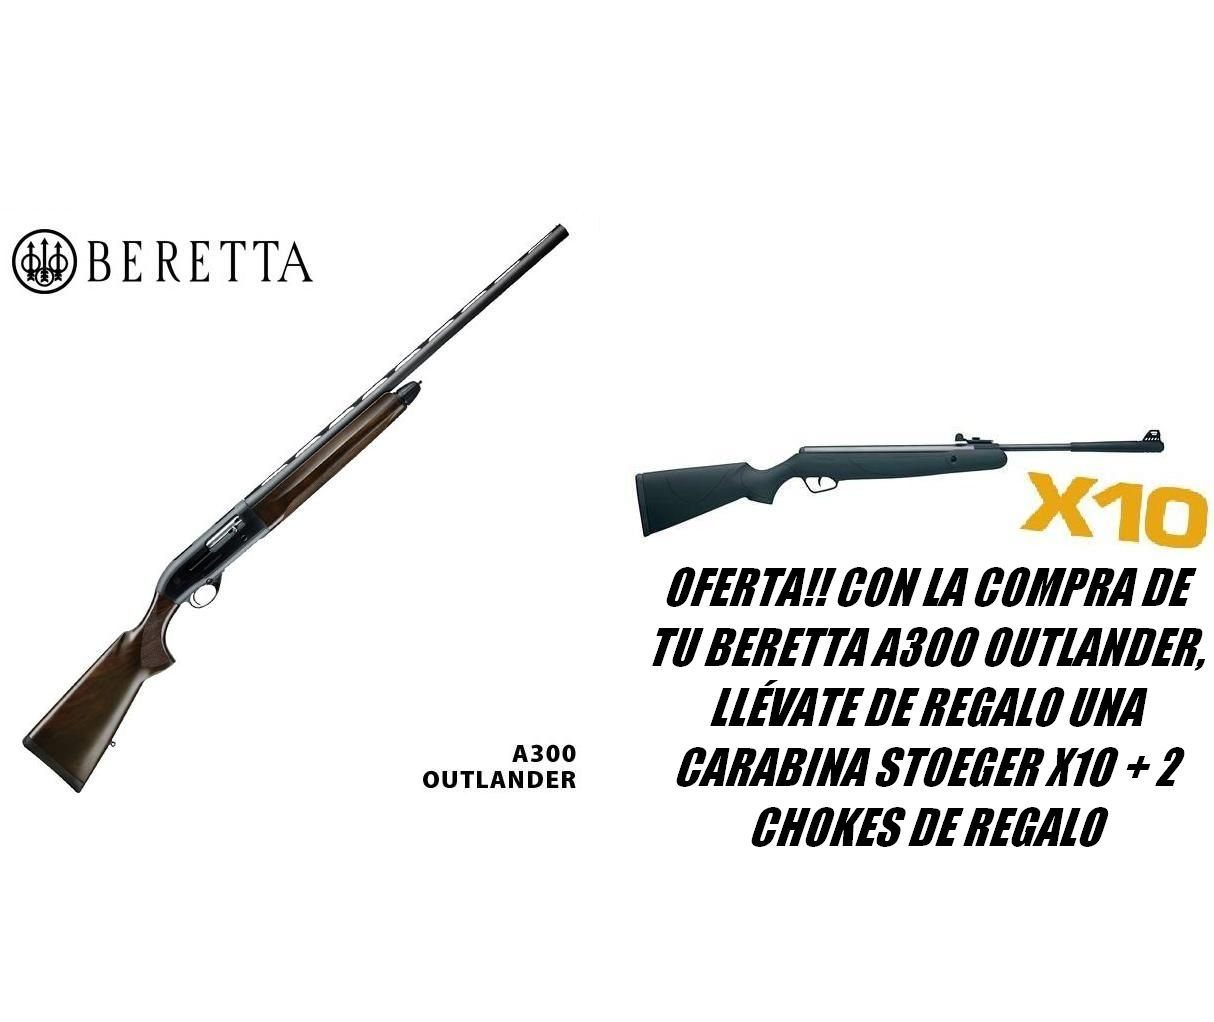 Beretta A300 Outlander Shotgun CAL.12 Offer